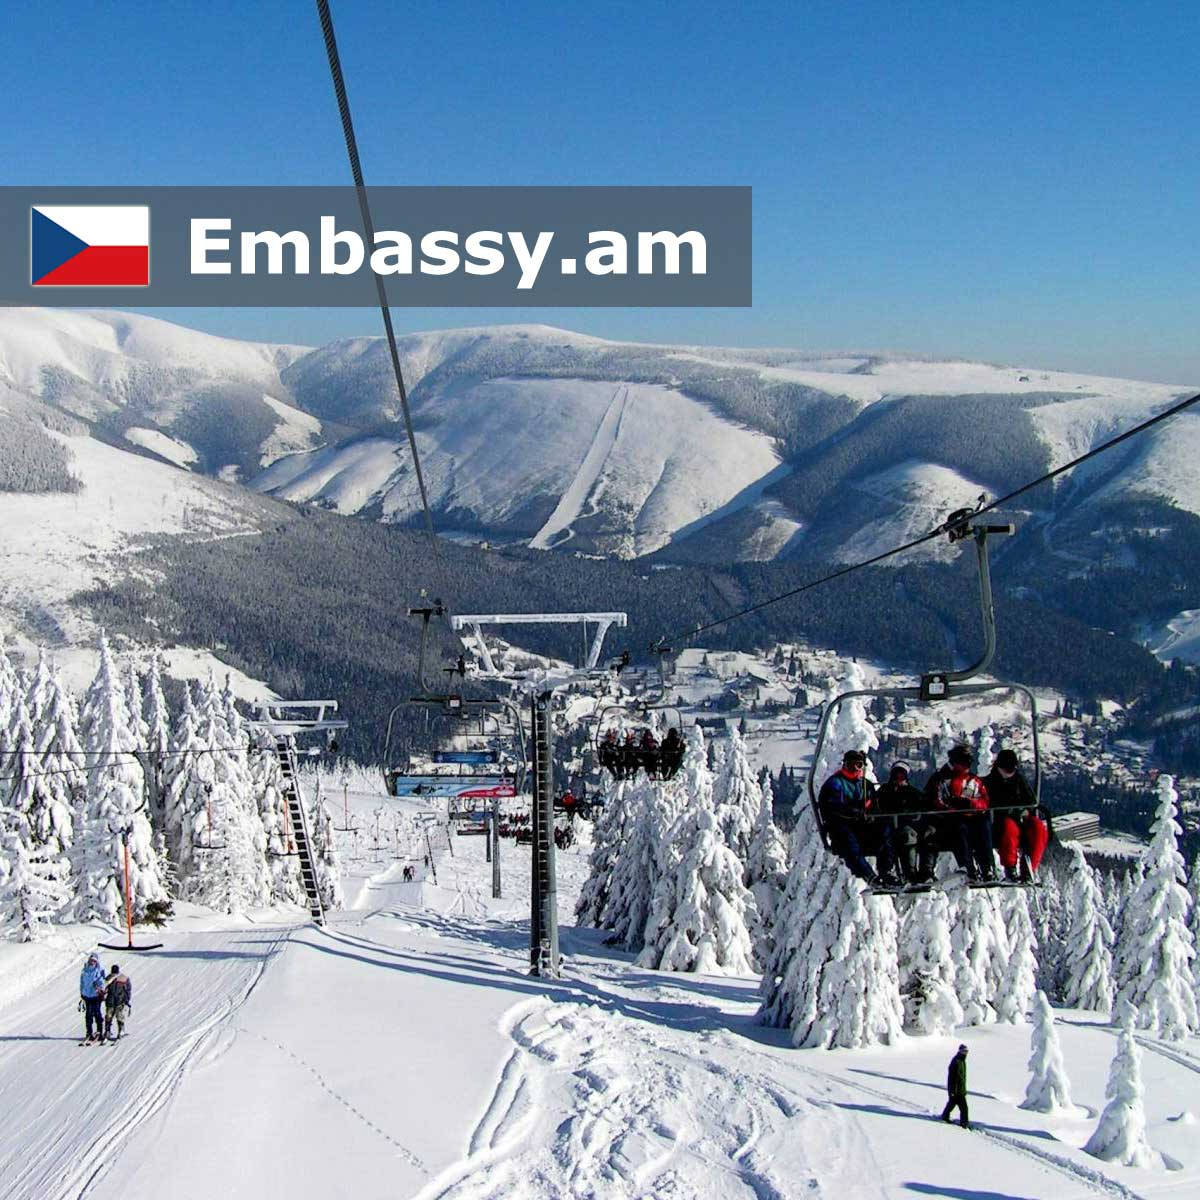 Spindleruv Mlyn - Hotels in the Czech Republic - Embassy.am